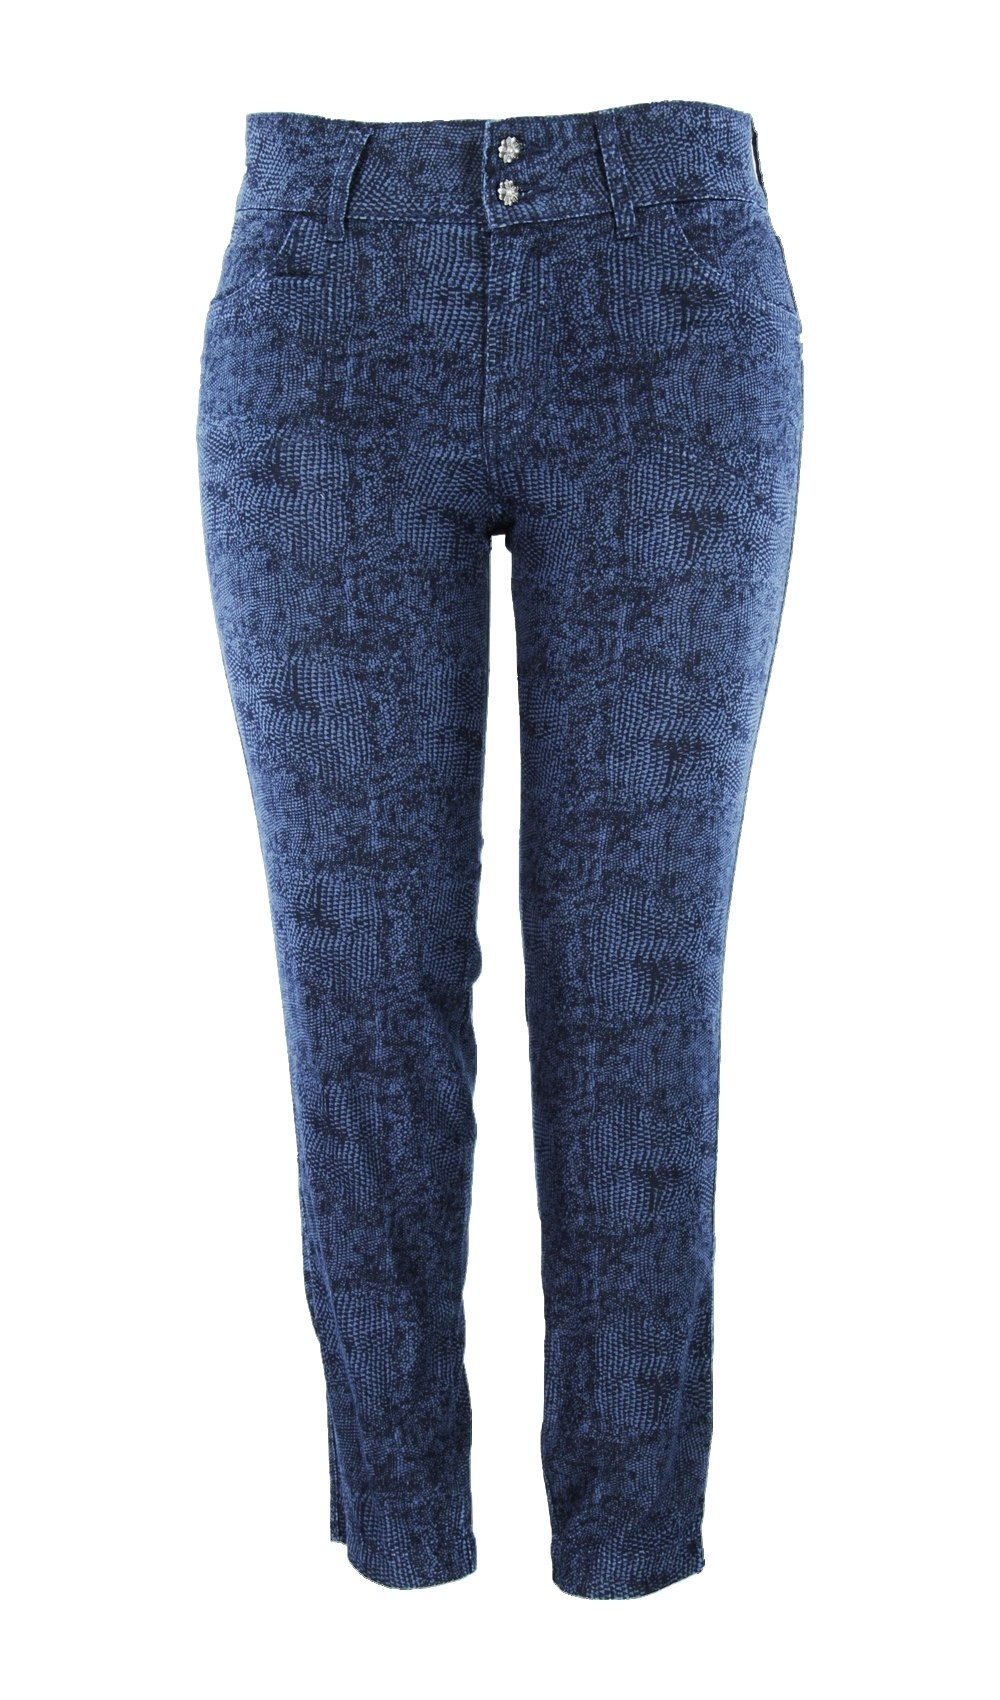 Cigarrete Eruption Jeans Estampada Asp [52168AM]